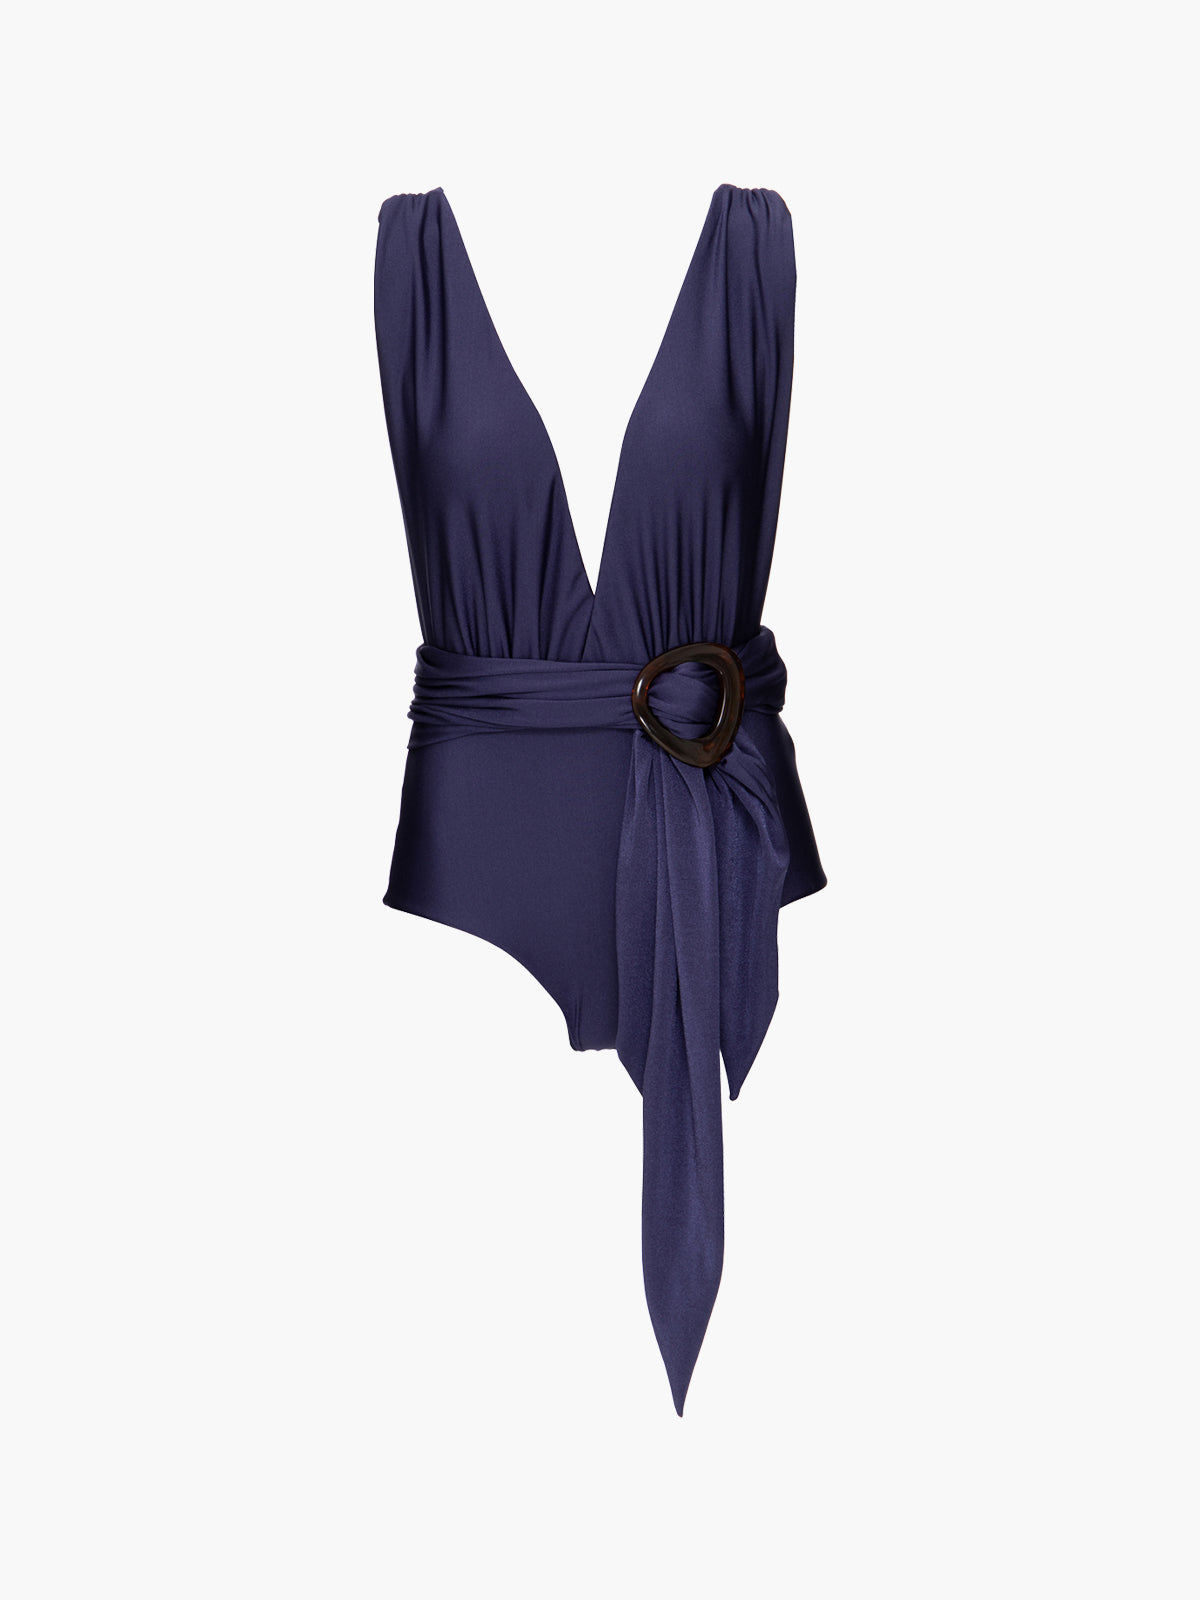 Belted Plunge One Piece | Navy Belted Plunge One Piece | Navy